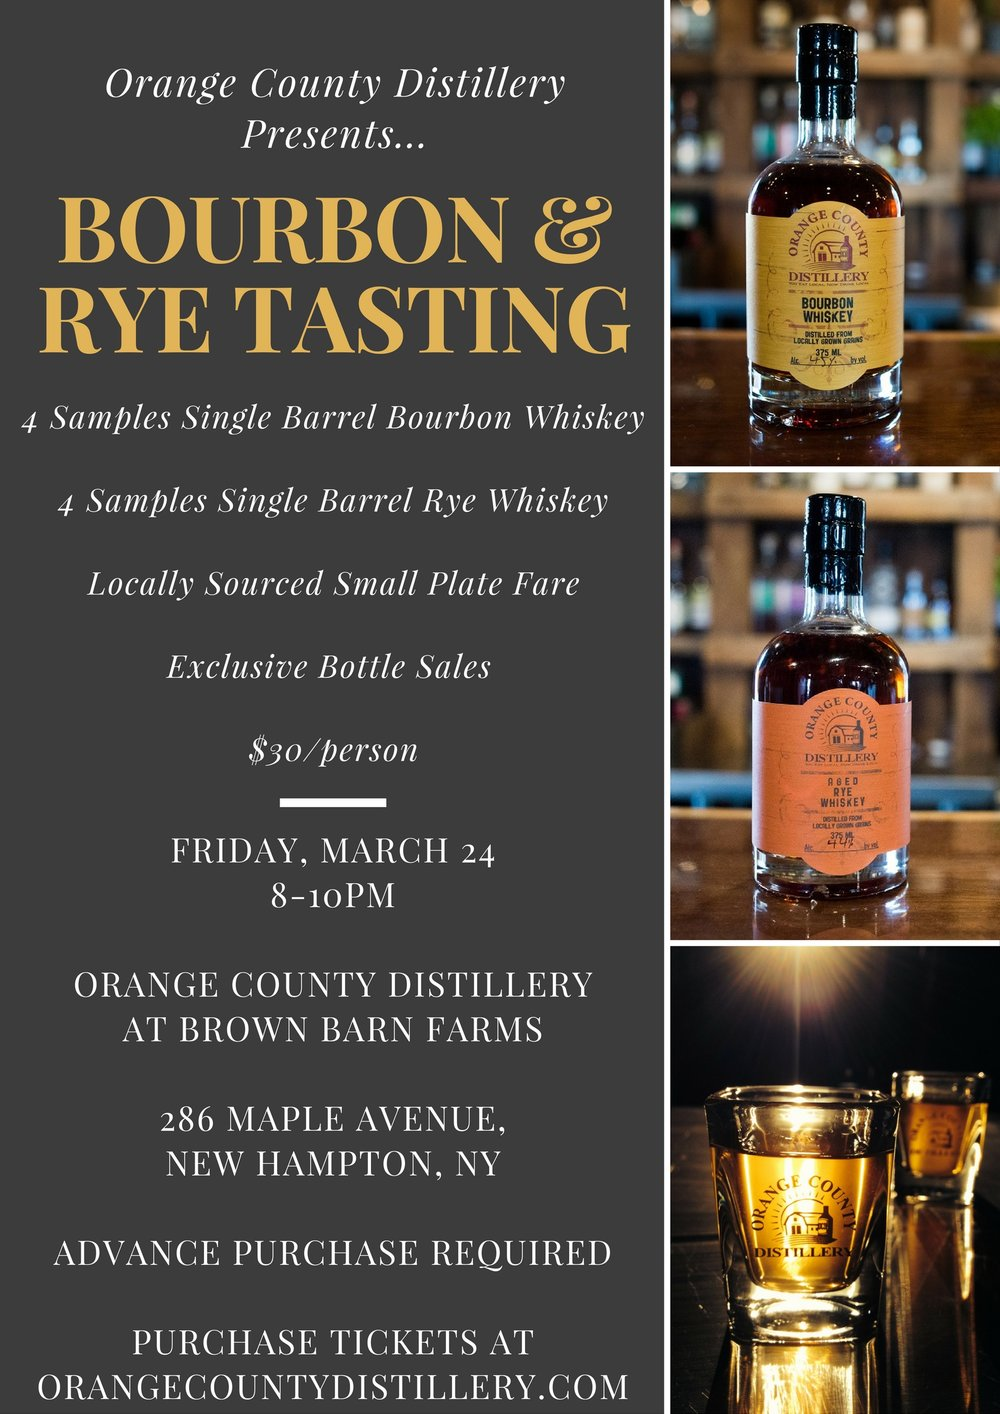 It's back!  Our second Bourbon AND Rye tasting!    4 samples of single barrel Bourbon Whiskey;    4 samples of single barrel Rye Whiskey;    Local meats, local cheeses and Bourbon fudge;    Exclusive bottle sales of ALL Bourbon's & Rye's being offered;    $30/person.    286 Maple Avenue, New Hampton, NY 10958    Advance ticket purchase required.     PURCHASE TICKETS HERE